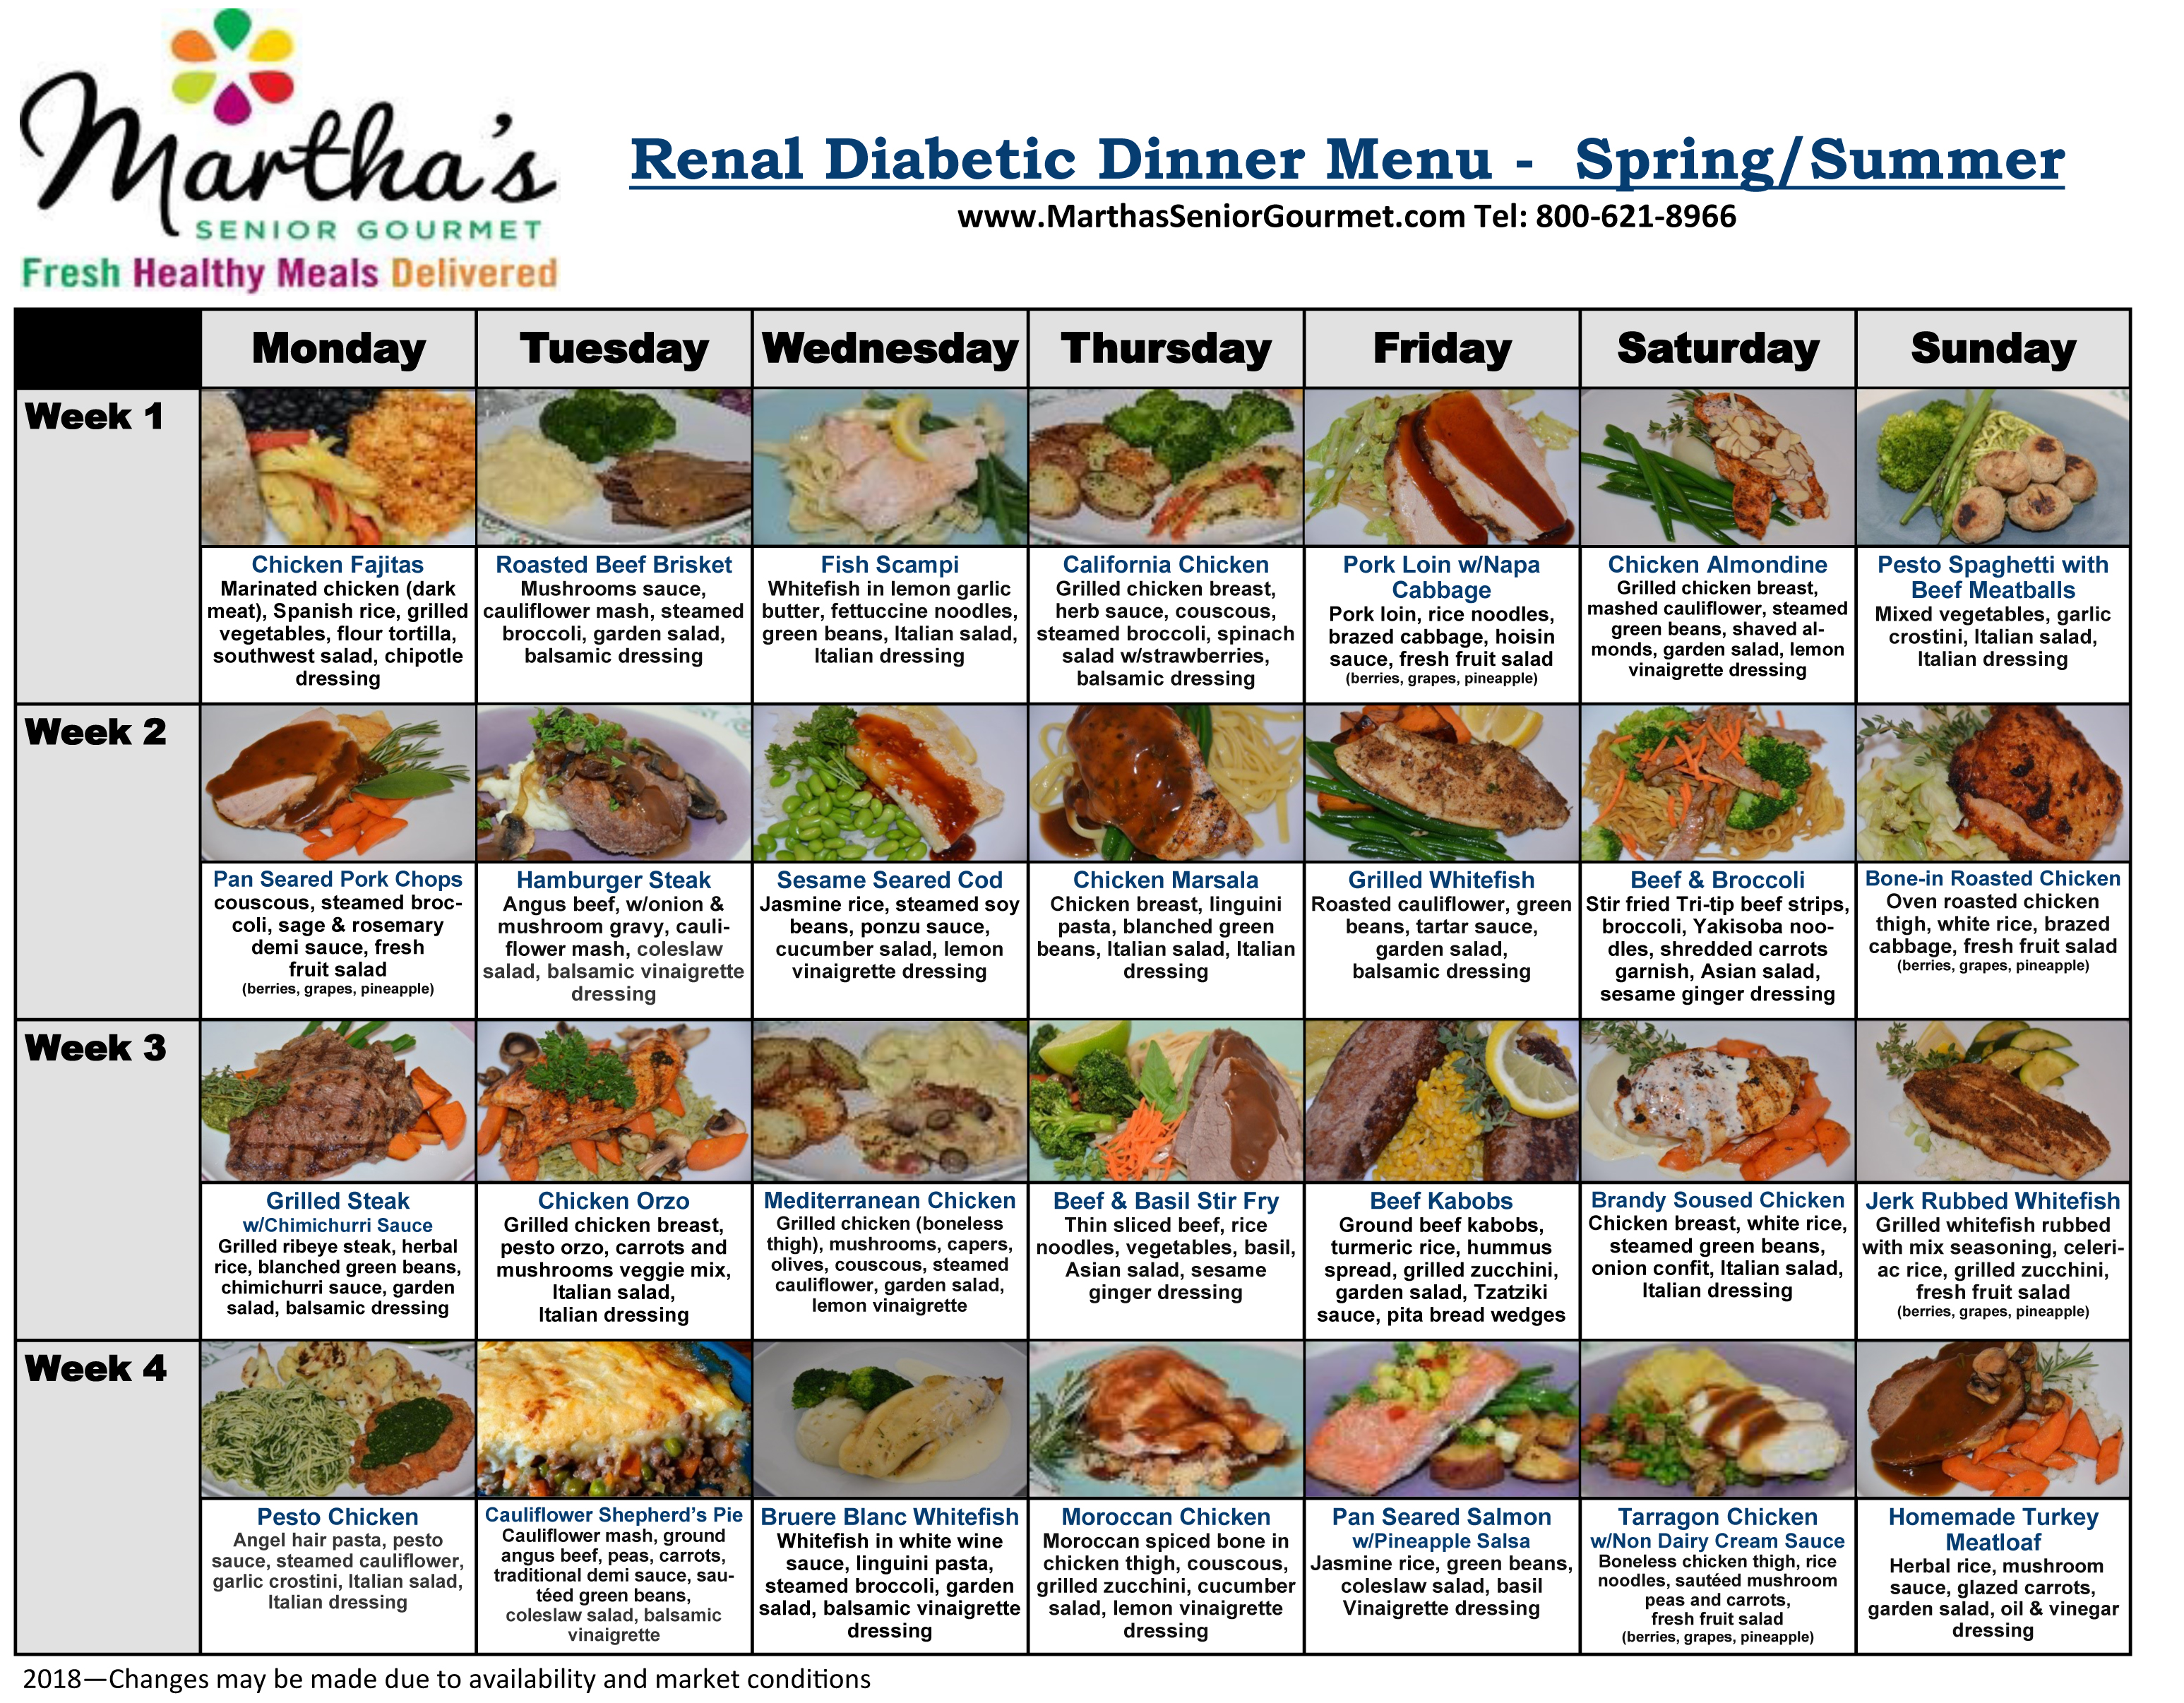 Renal diabetic menu are you ready to place your order for gourmet meal delivery complete the process online or let one of our friendly staff members assist you over the phone forumfinder Choice Image